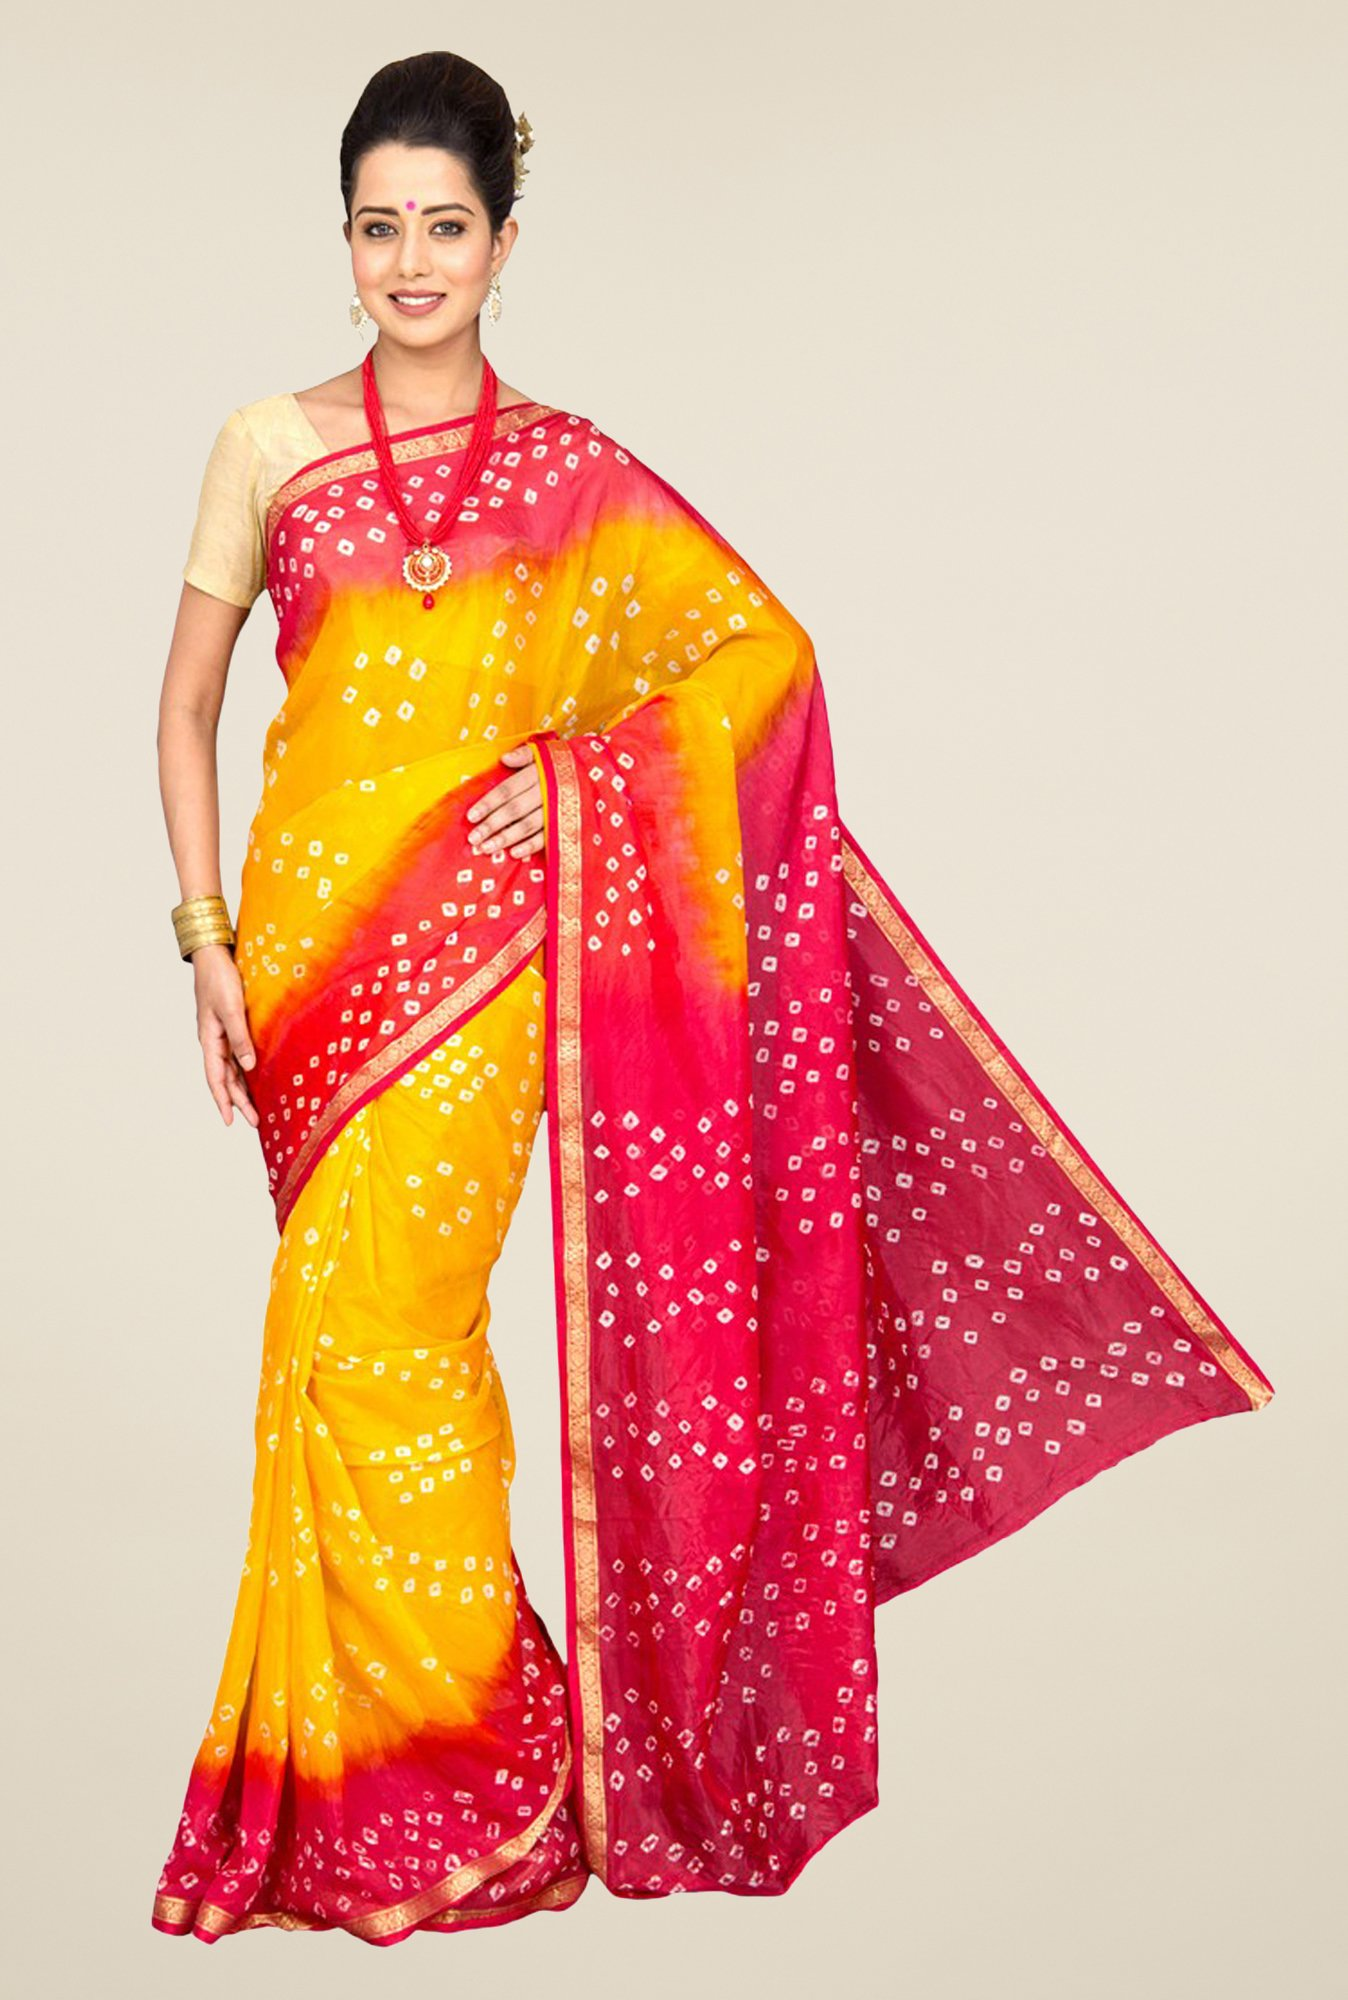 Pavecha's Yellow & Red Chiffon Saree